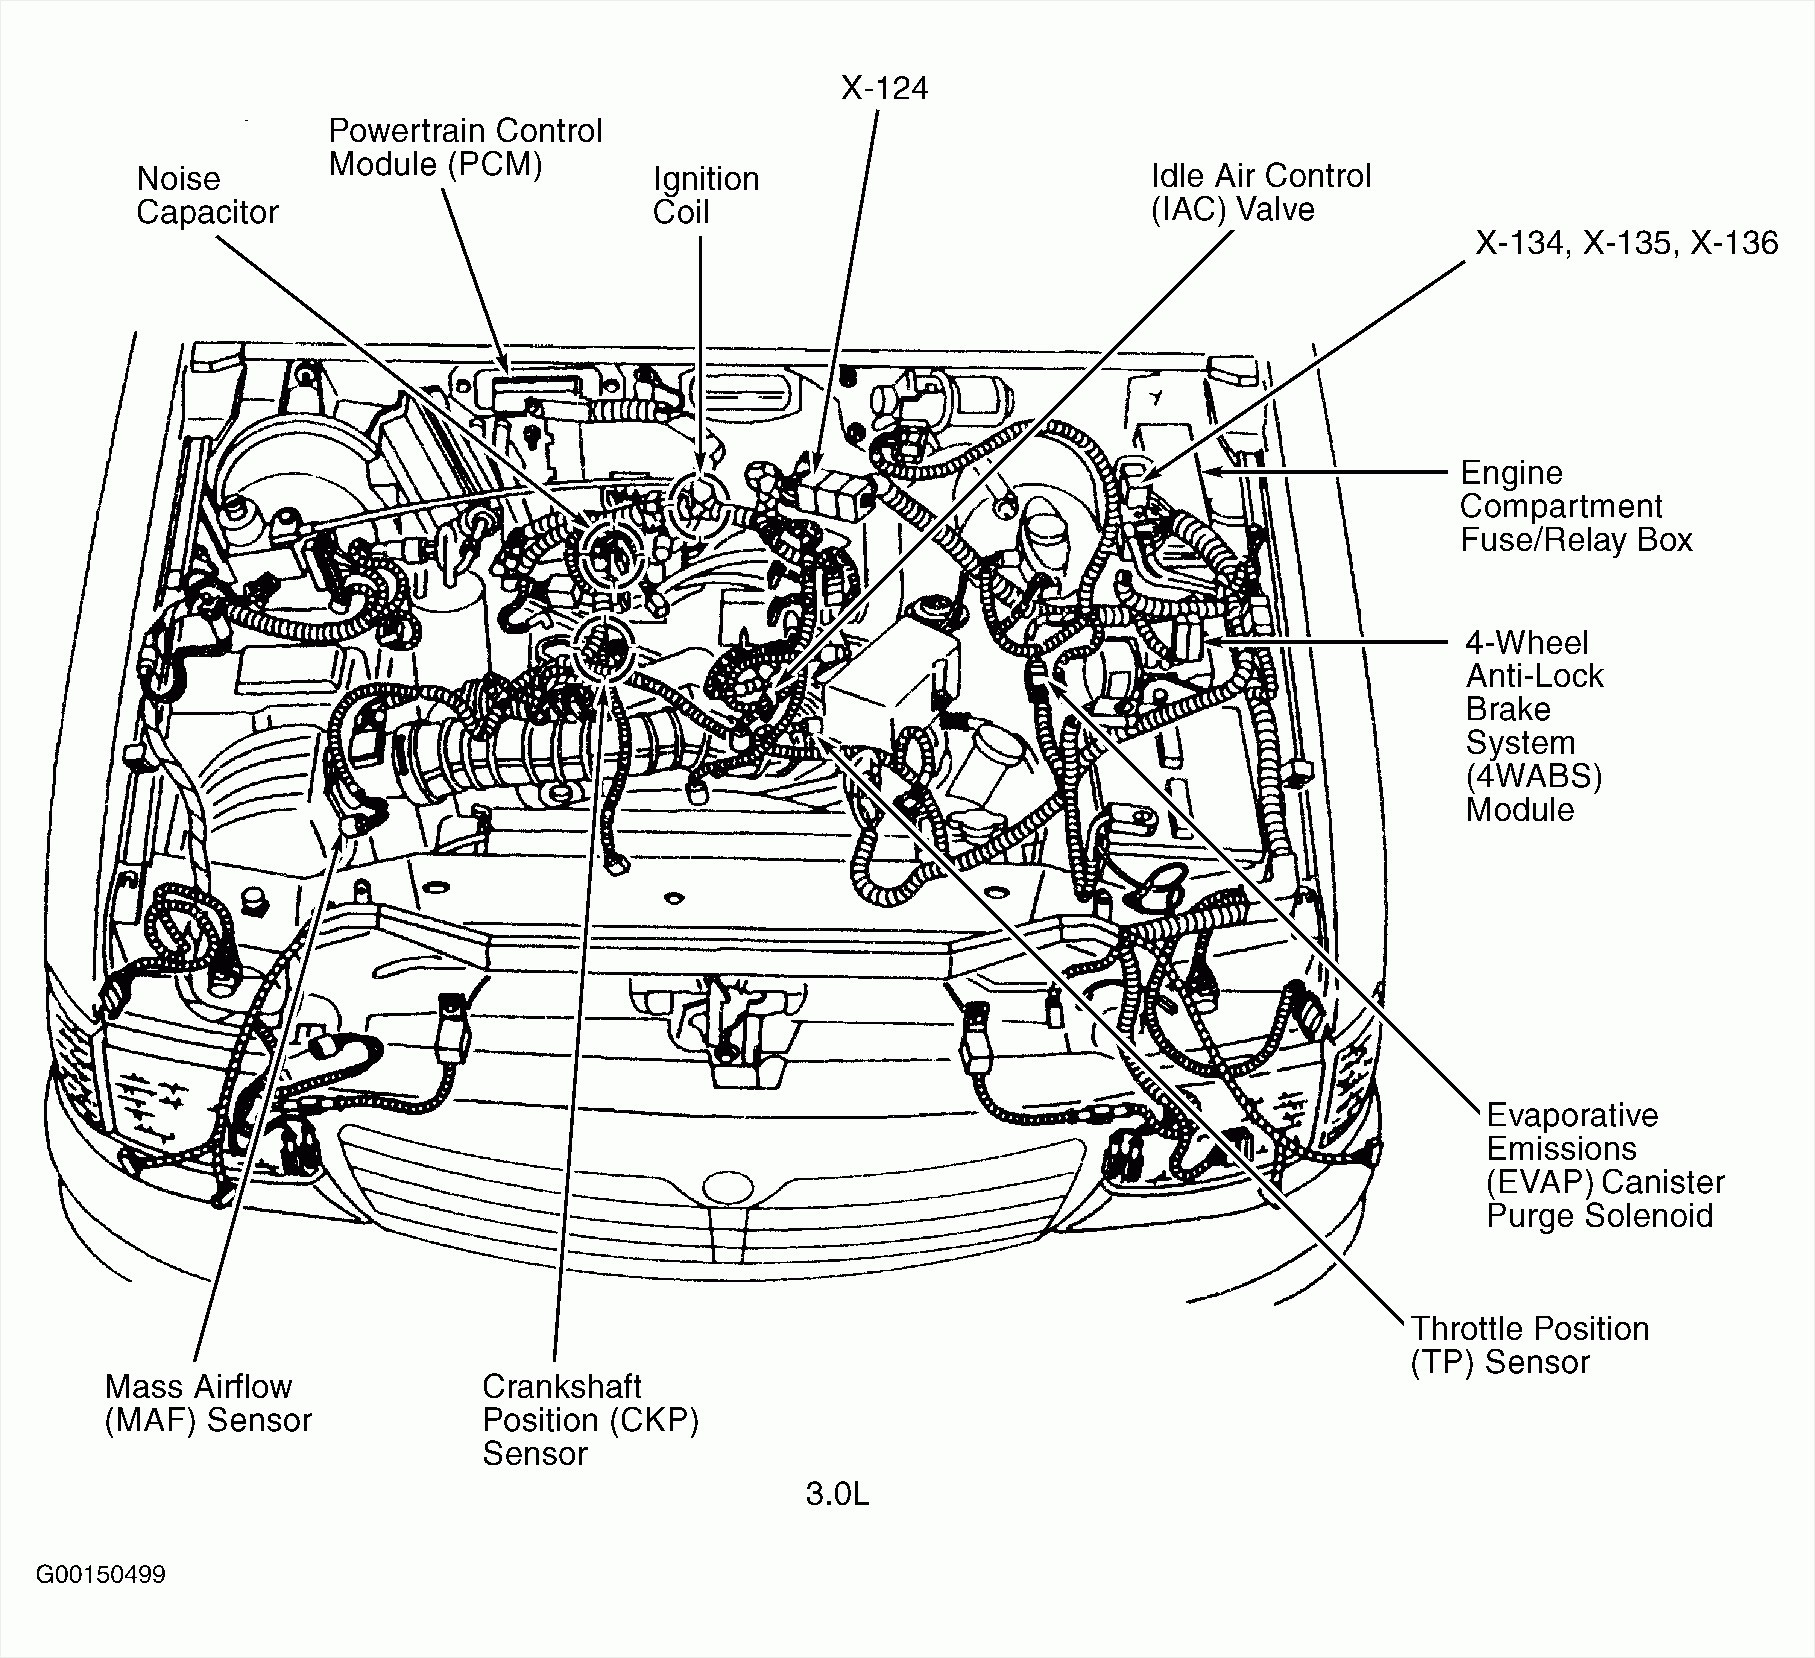 3100 sfi engine diagram wiring diagram read Diagram of 3.4L V6 Engine